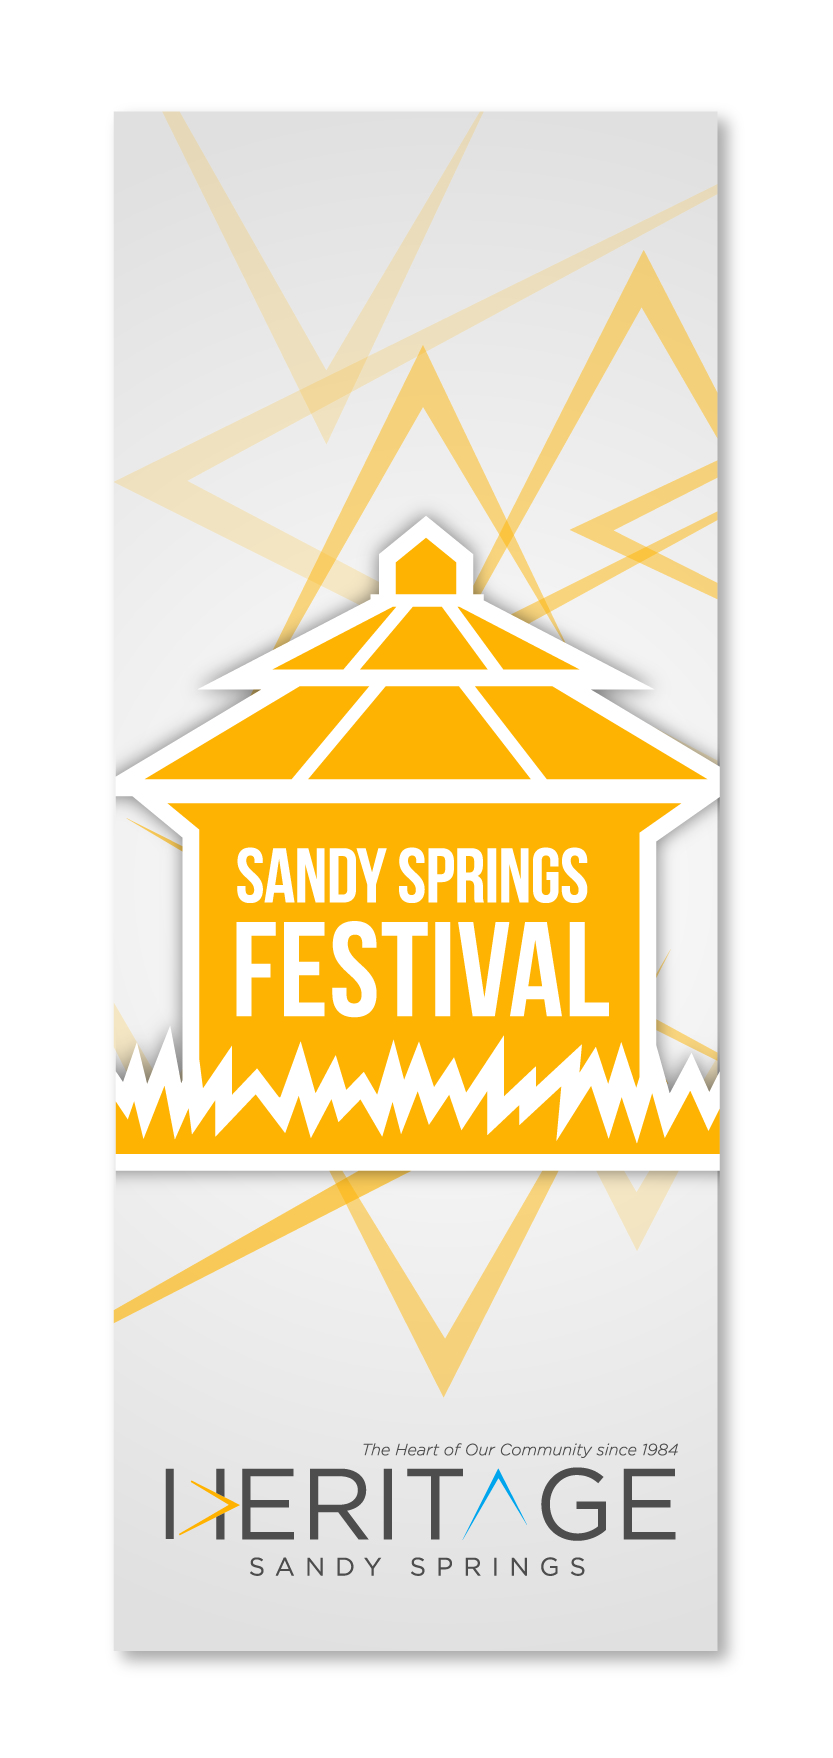 SandySprings-Festival-2018